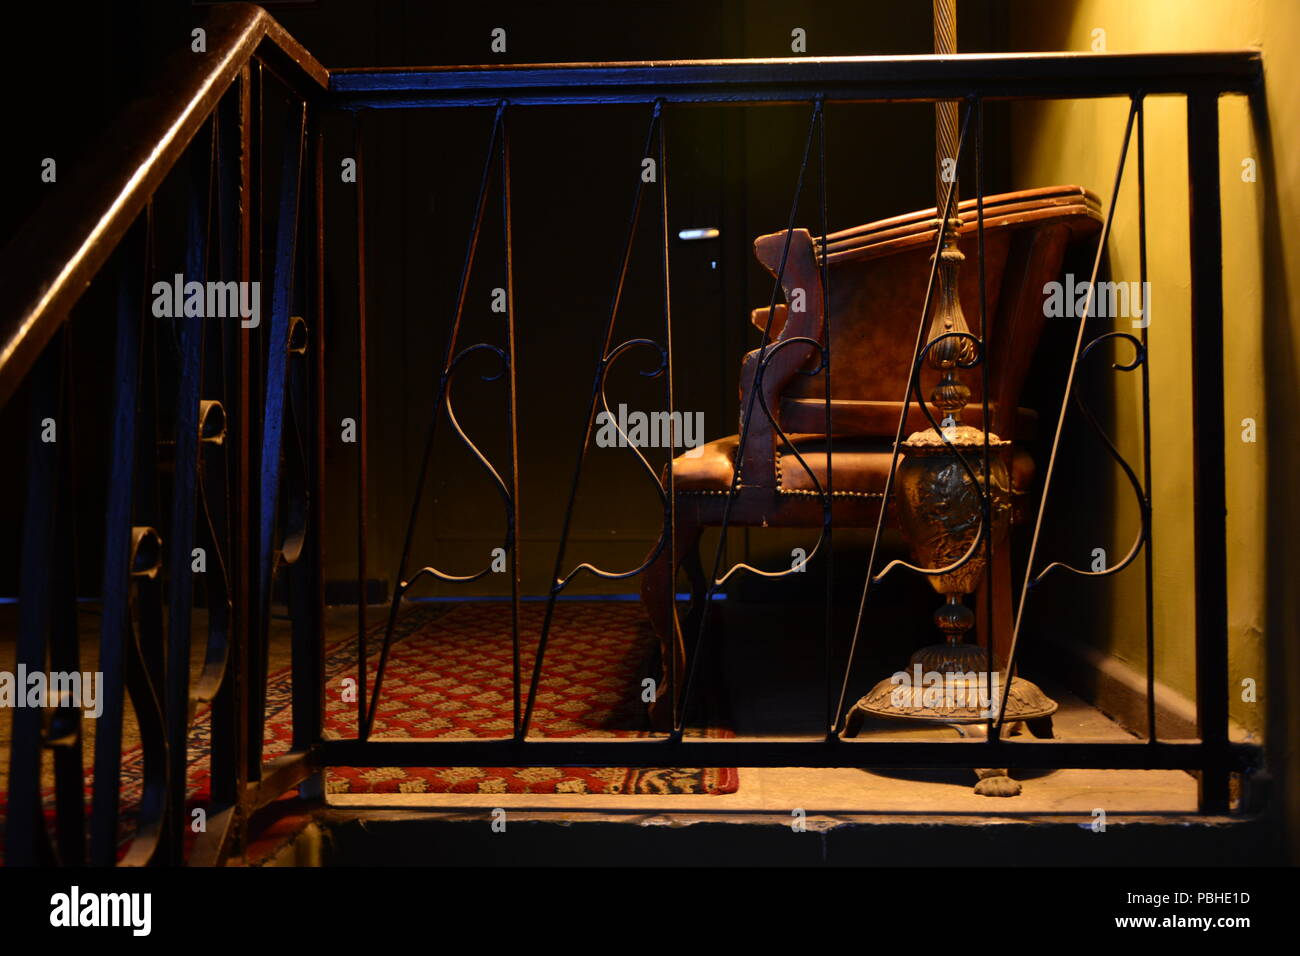 empty chair dark house night eastern house vacant seat old building spotlight secret remembrance abandoned sad loyal spooky scary weired interior - Stock Image